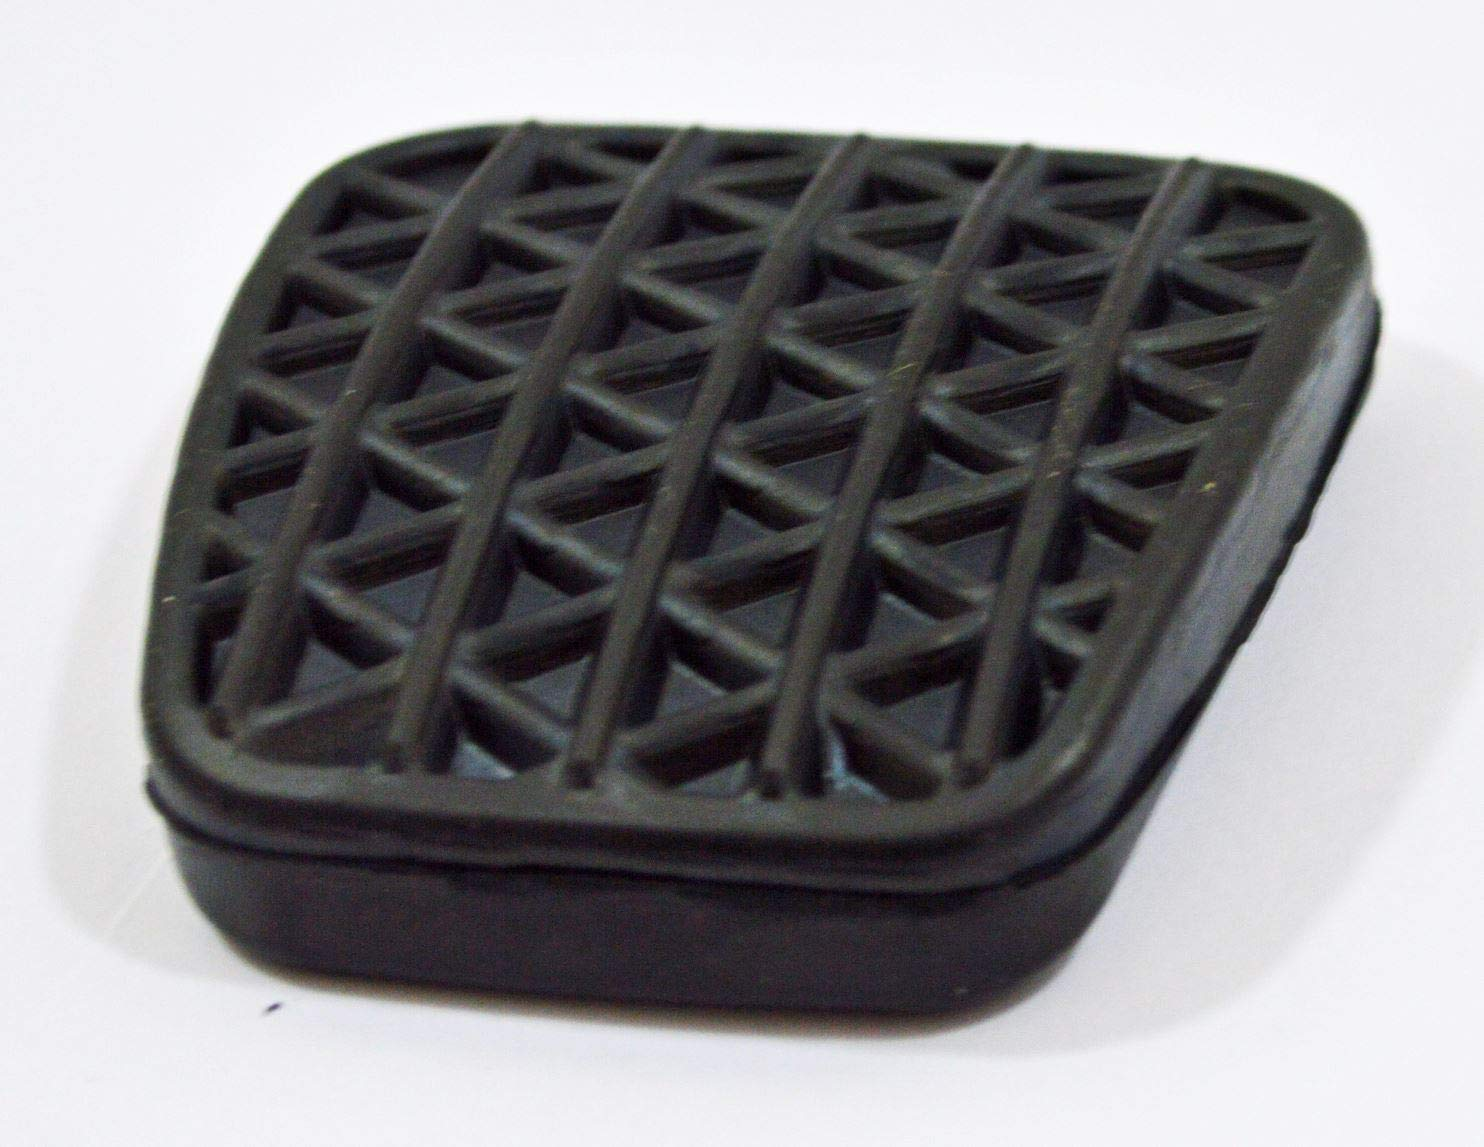 13281359 : GENUINE Clutch Pedal Rubber/Pad - NEW from LSC